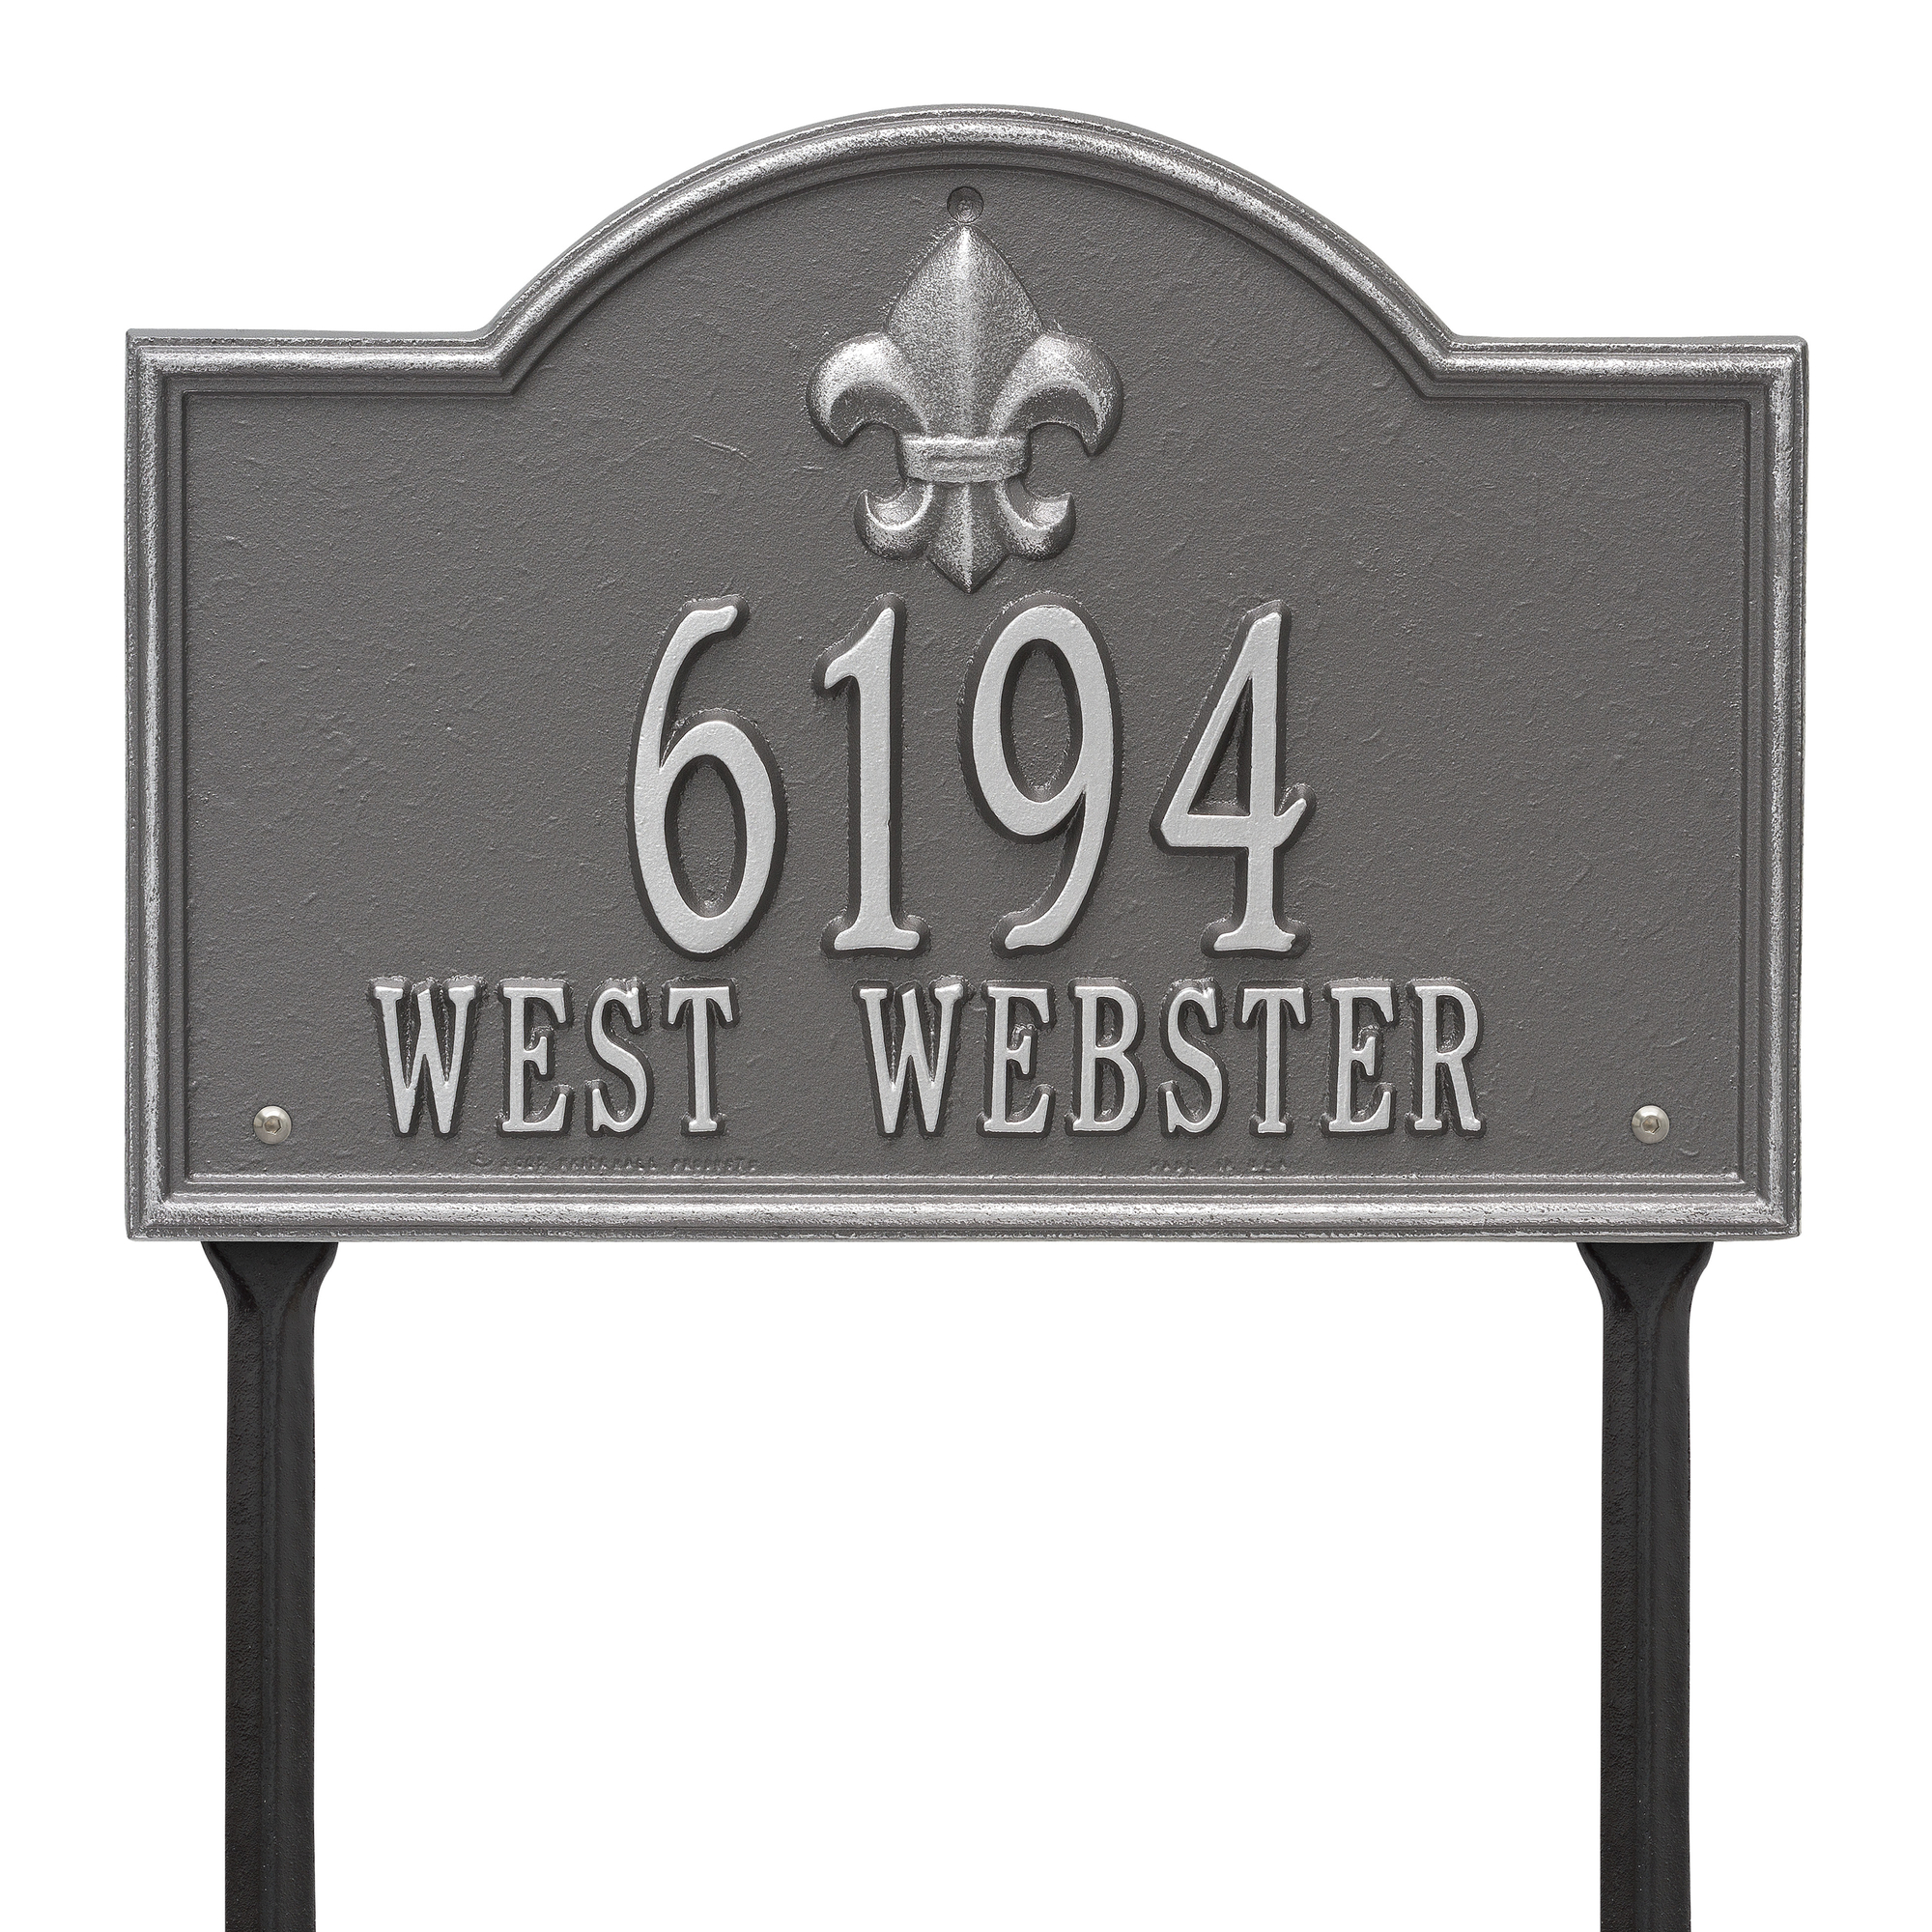 Personalized Whitehall Products Bayou Vista Standard Lawn House Numbers Plaque in Pewter Silver